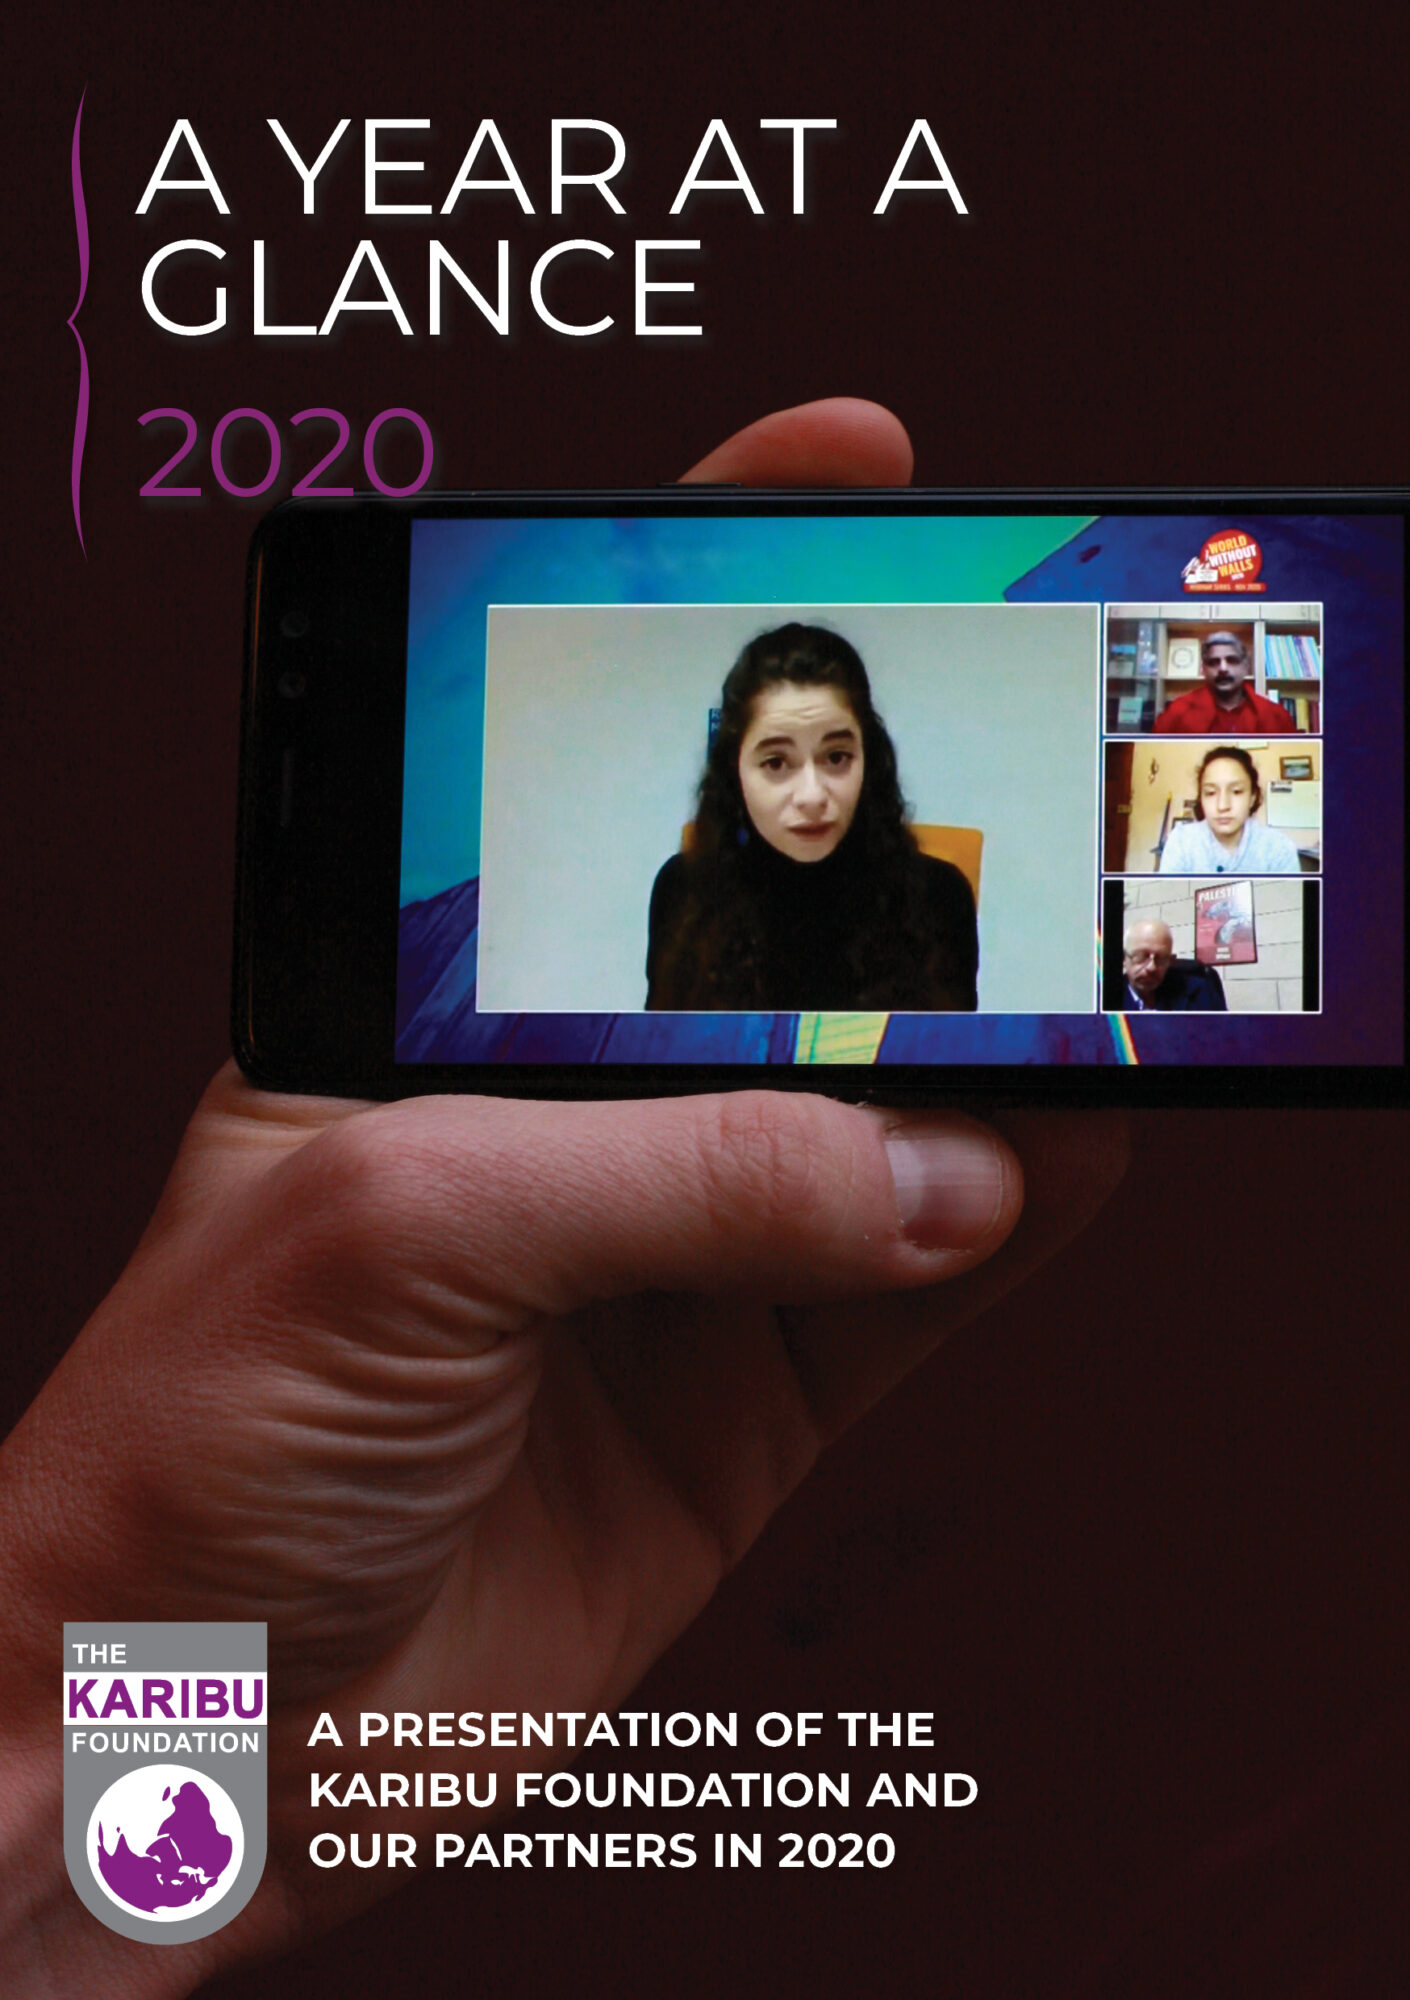 2020 Year at a Glance COVER